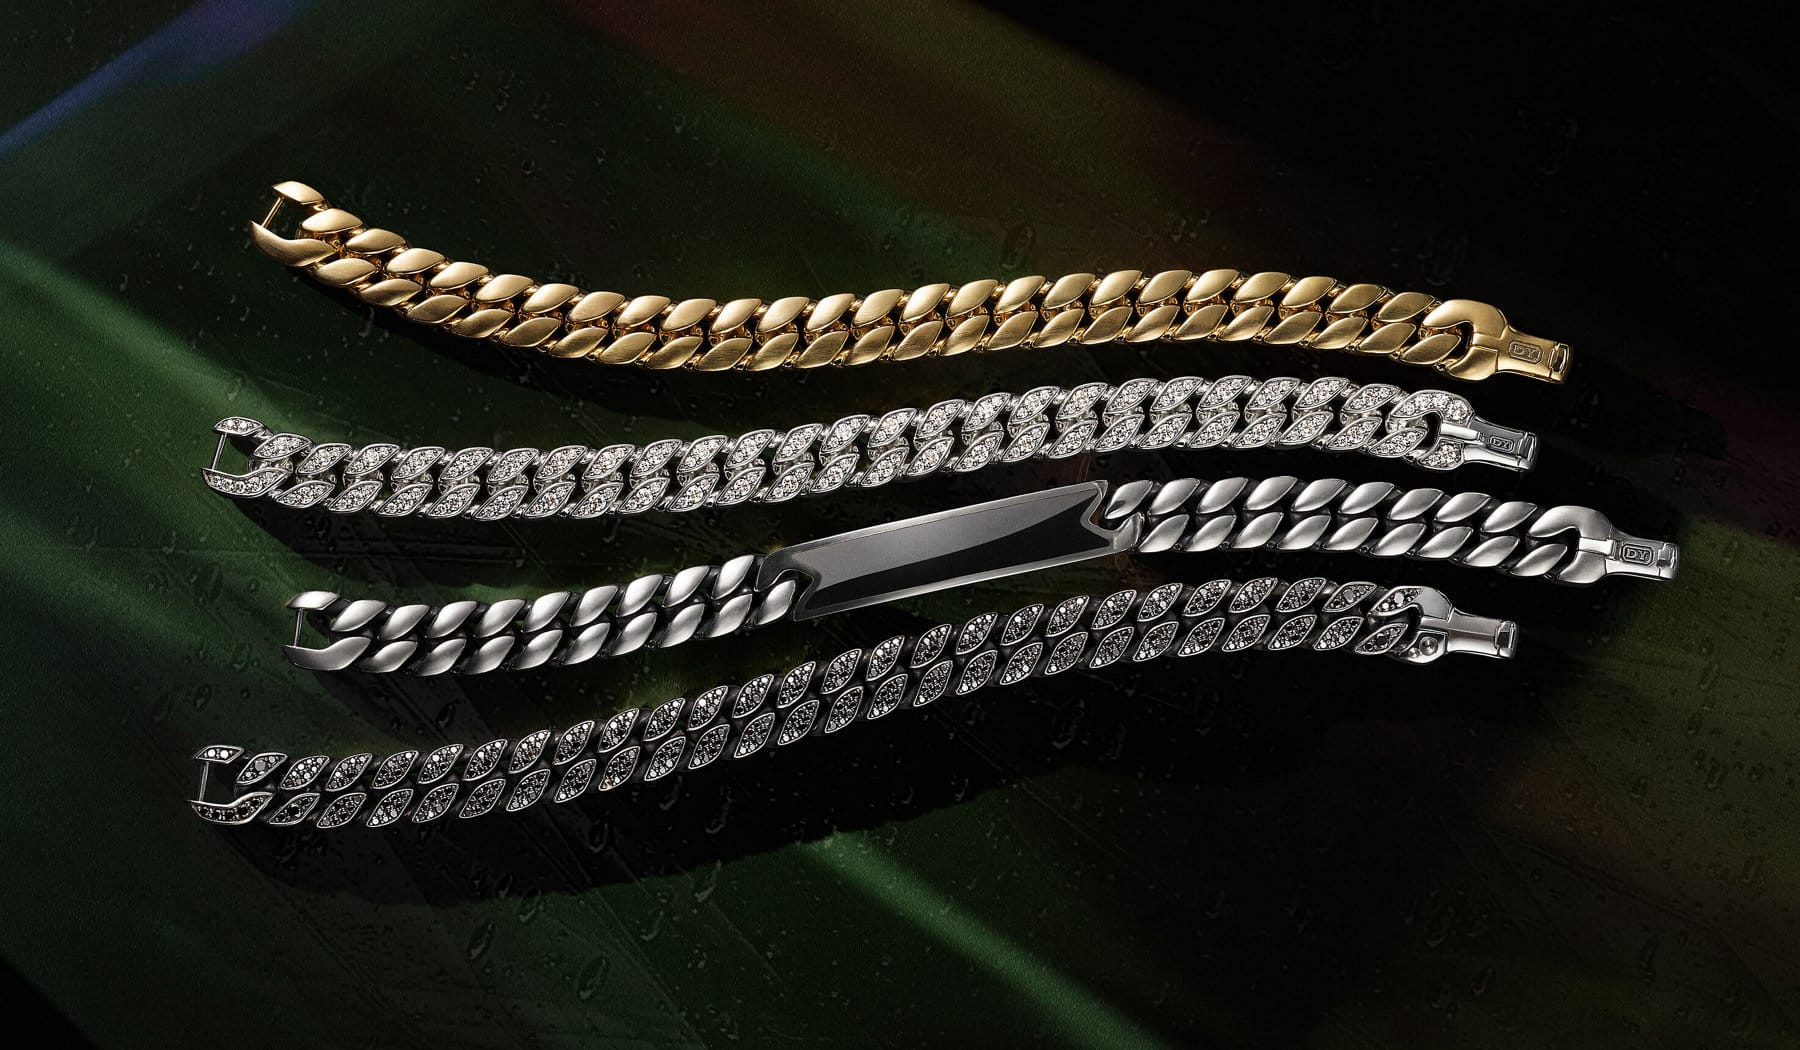 A color photograph shows a row of four David Yurman men's curb chain bracelets atop a colorful backdrop illuminated by light. Three of the bracelets are crafted from sterling silver with or without white or black diamonds or black onyx. One bracelet is crafted from 18K yellow gold